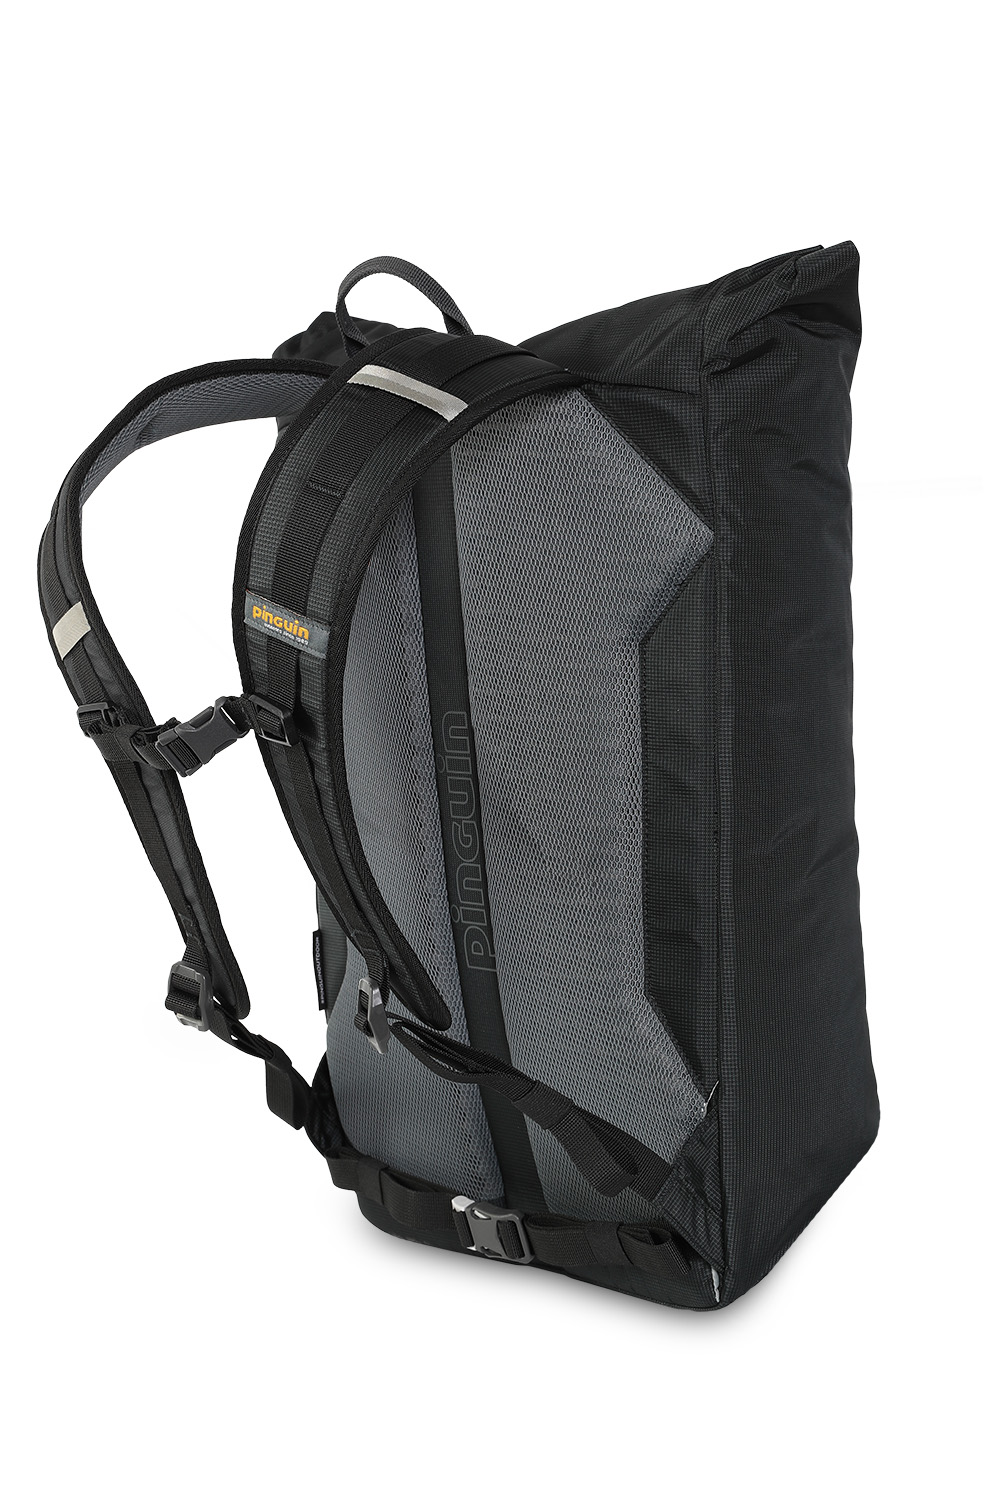 Commute 25 - Ventilated and comfortable back system E3D.